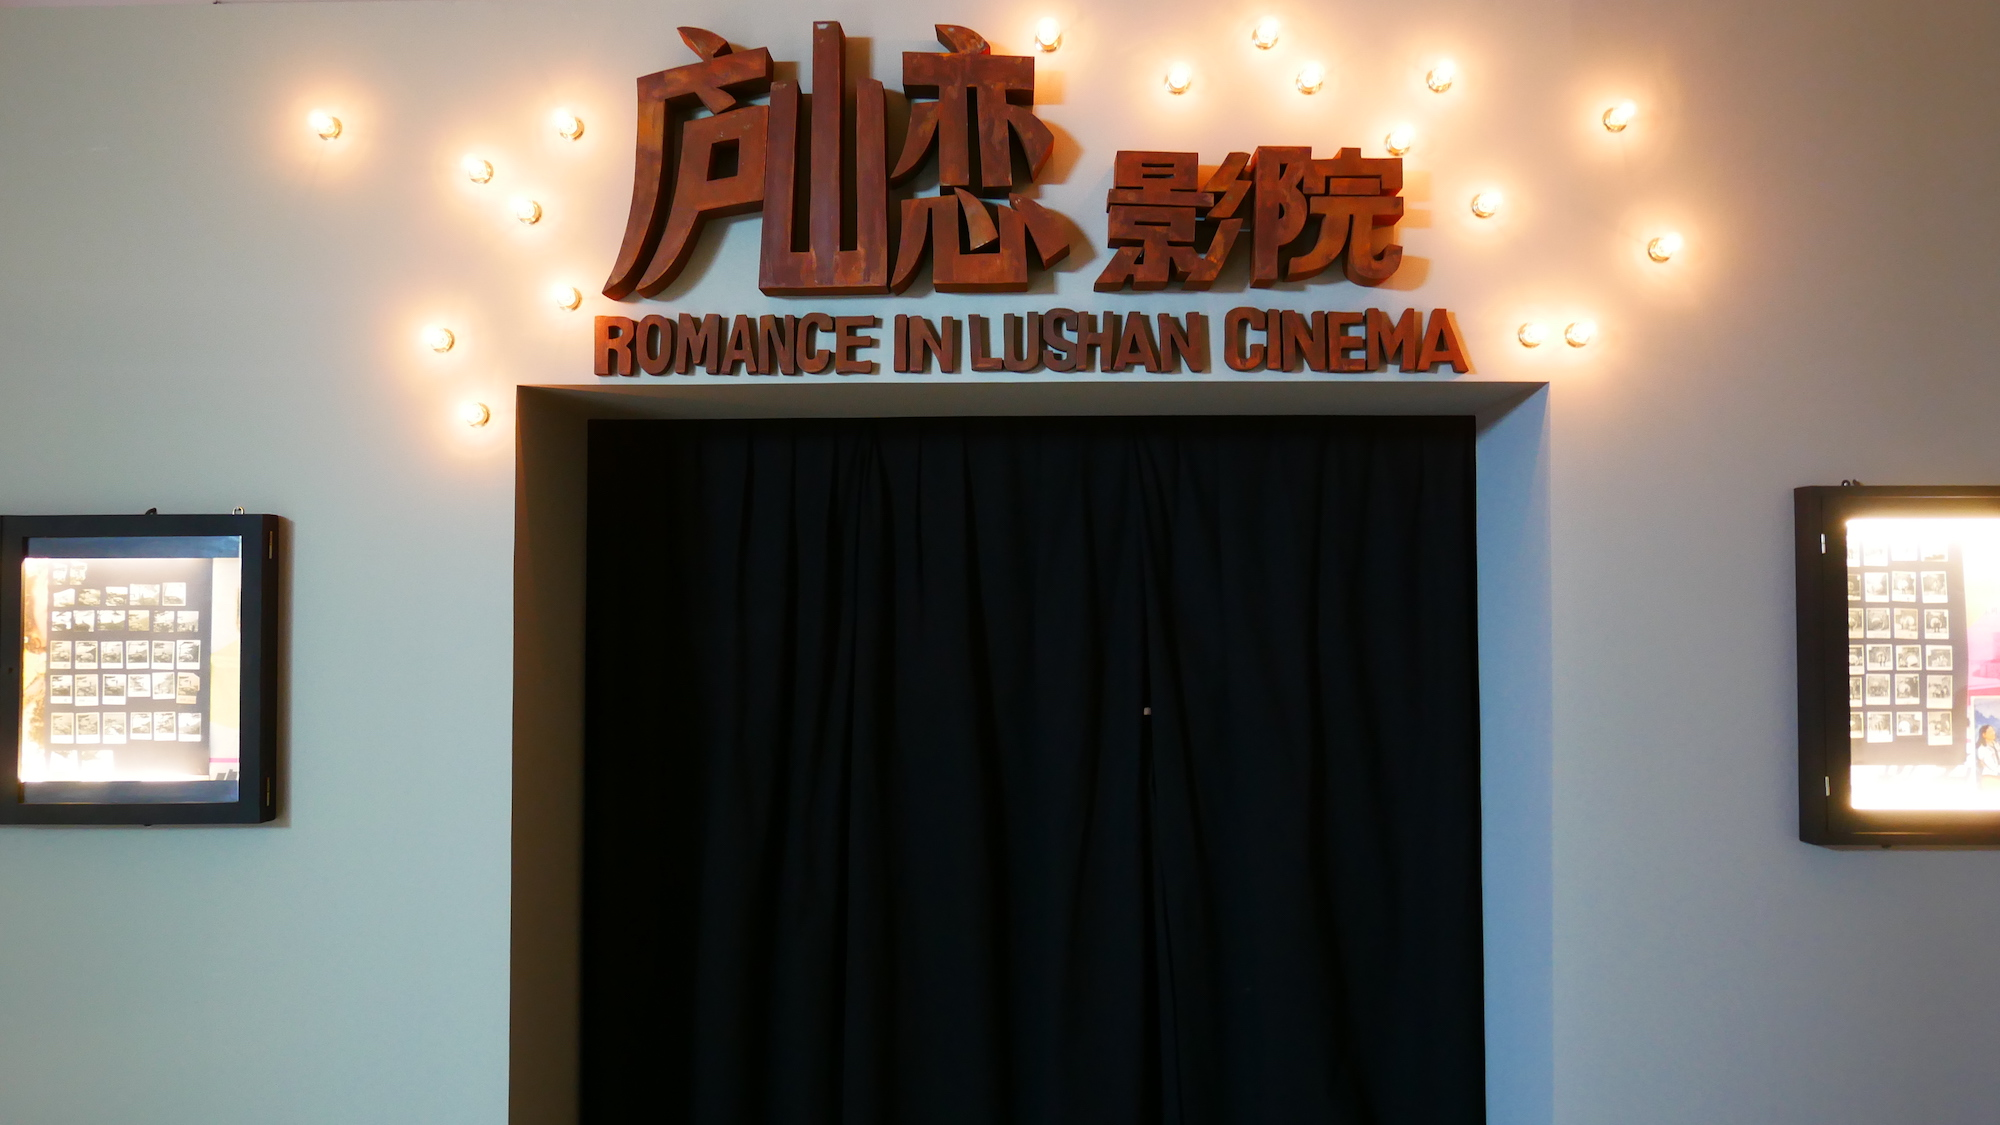 Photos from Lei Lei's exhibition in Arles,  Romance in Lushan Cinema